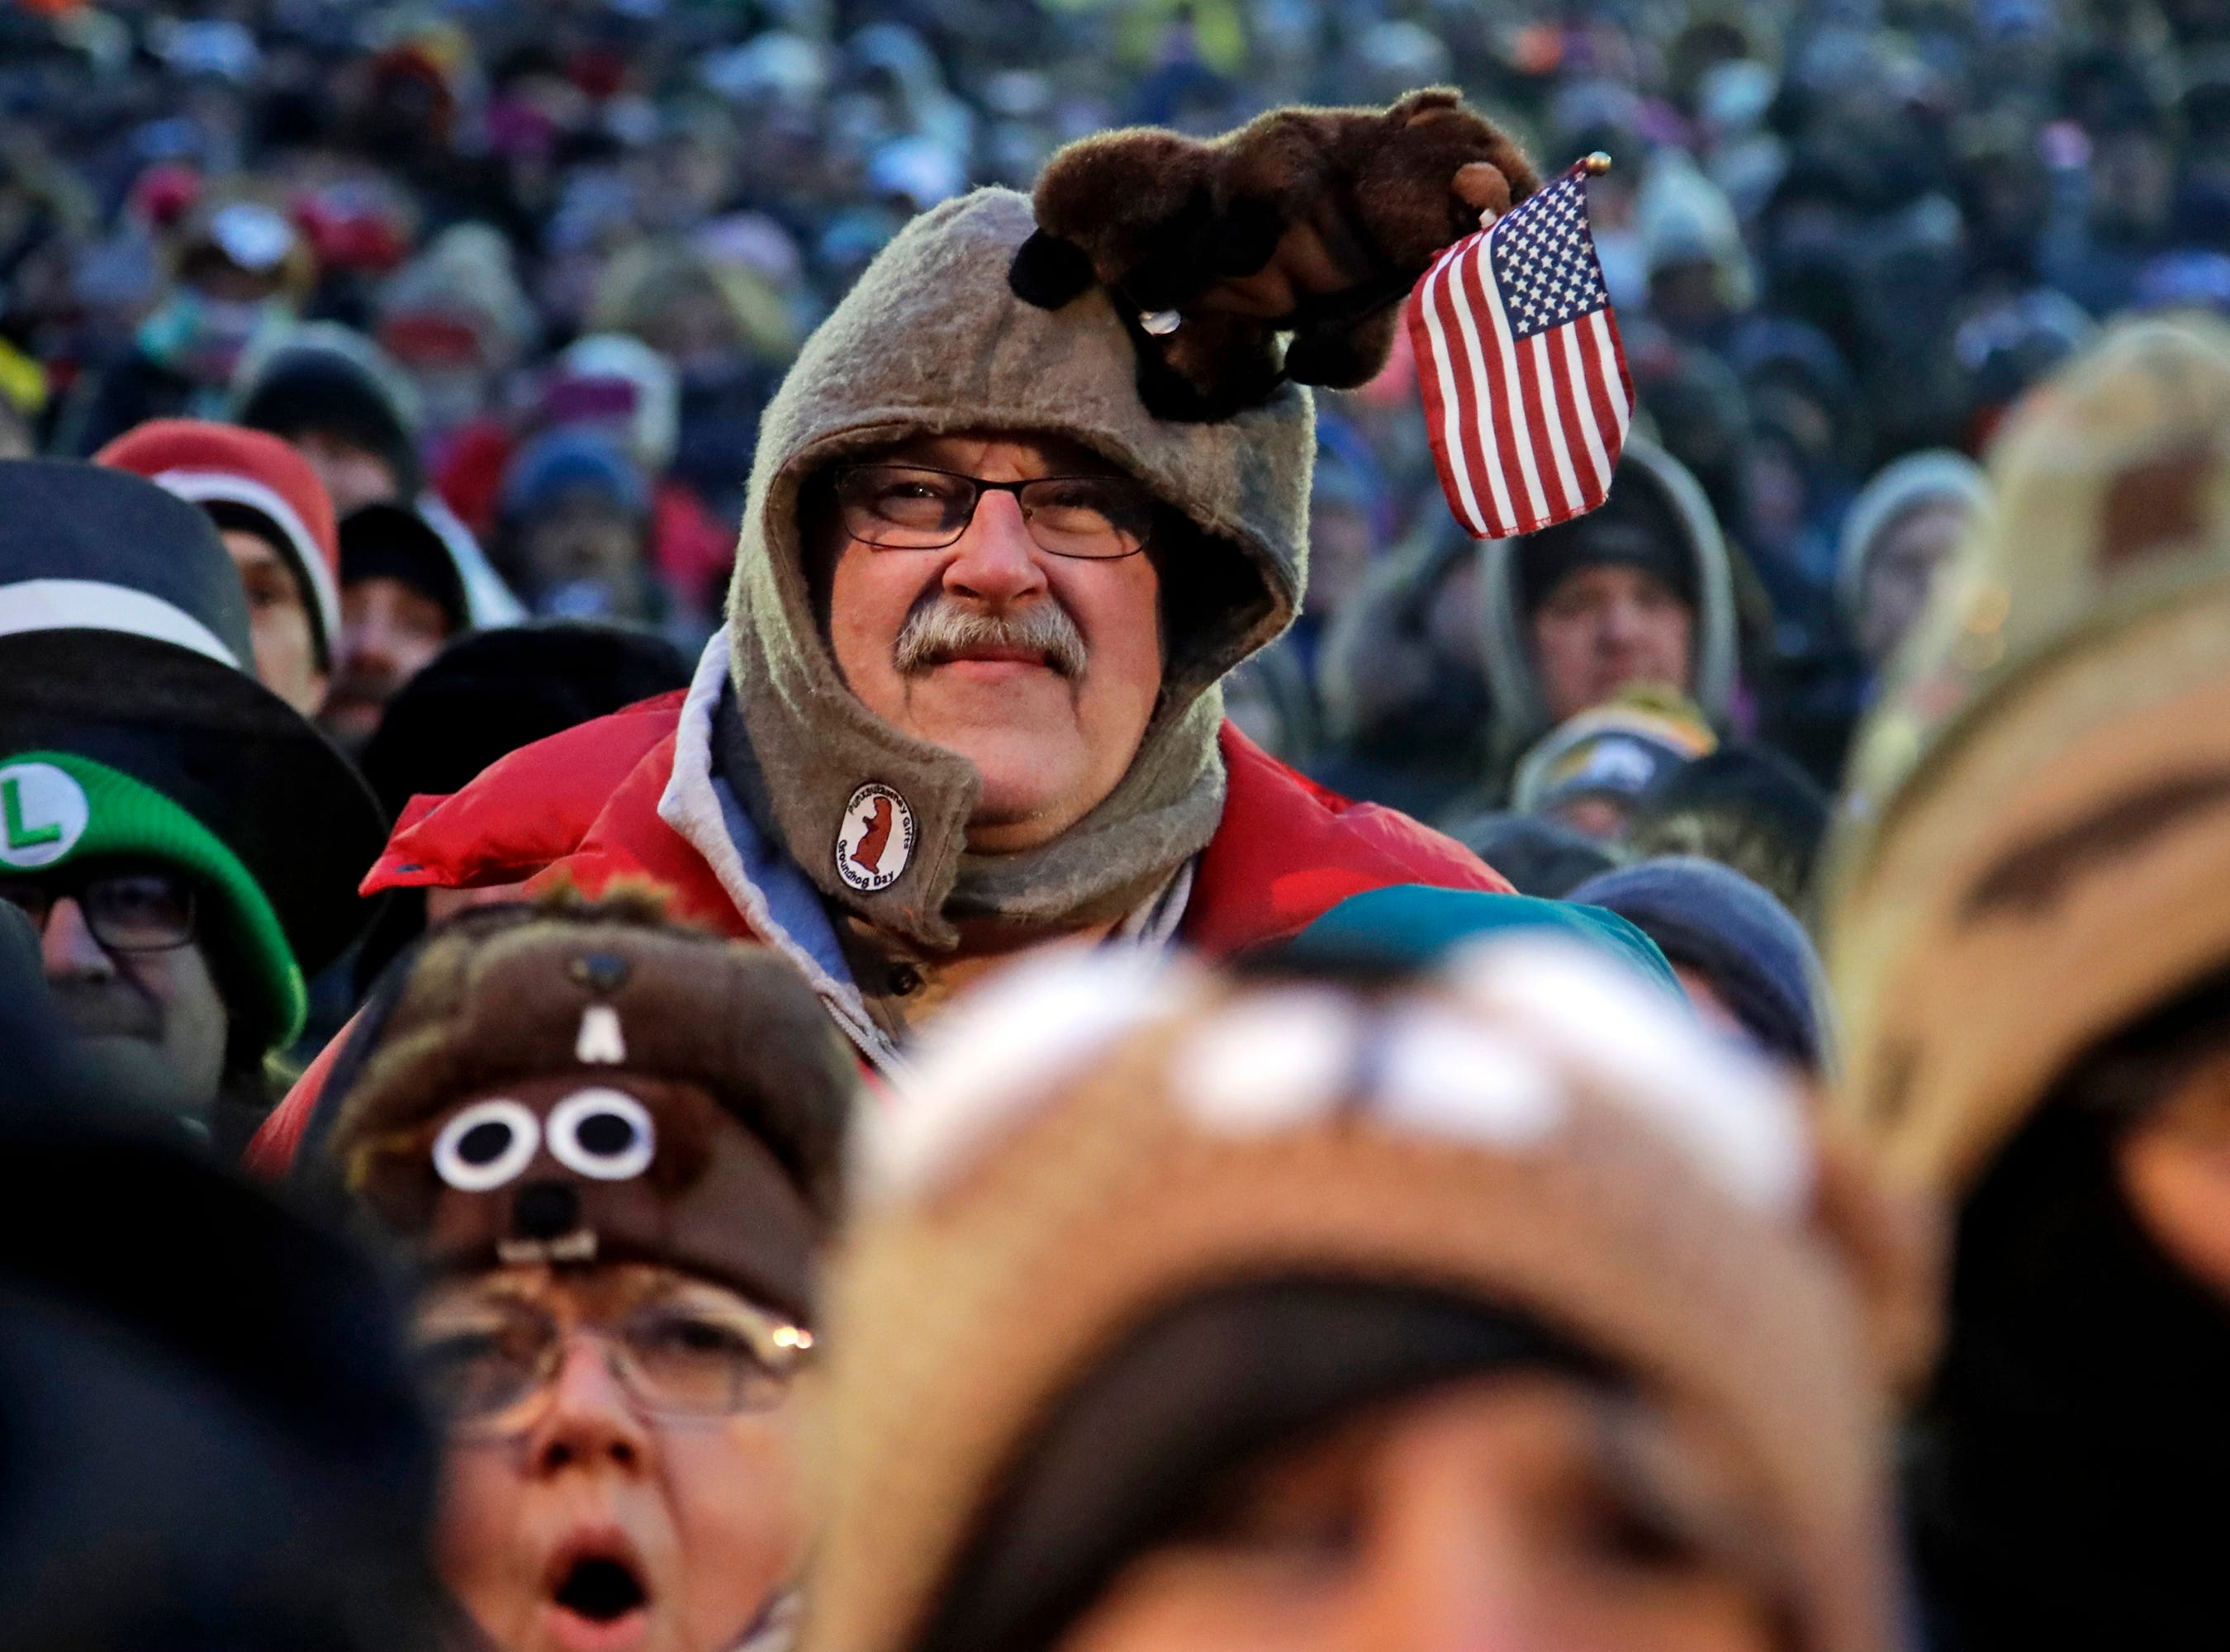 Al Donst of Belvidere, NJ, center, participates in the 133rd celebration of Groundhog Day on Gobbler's Knob.